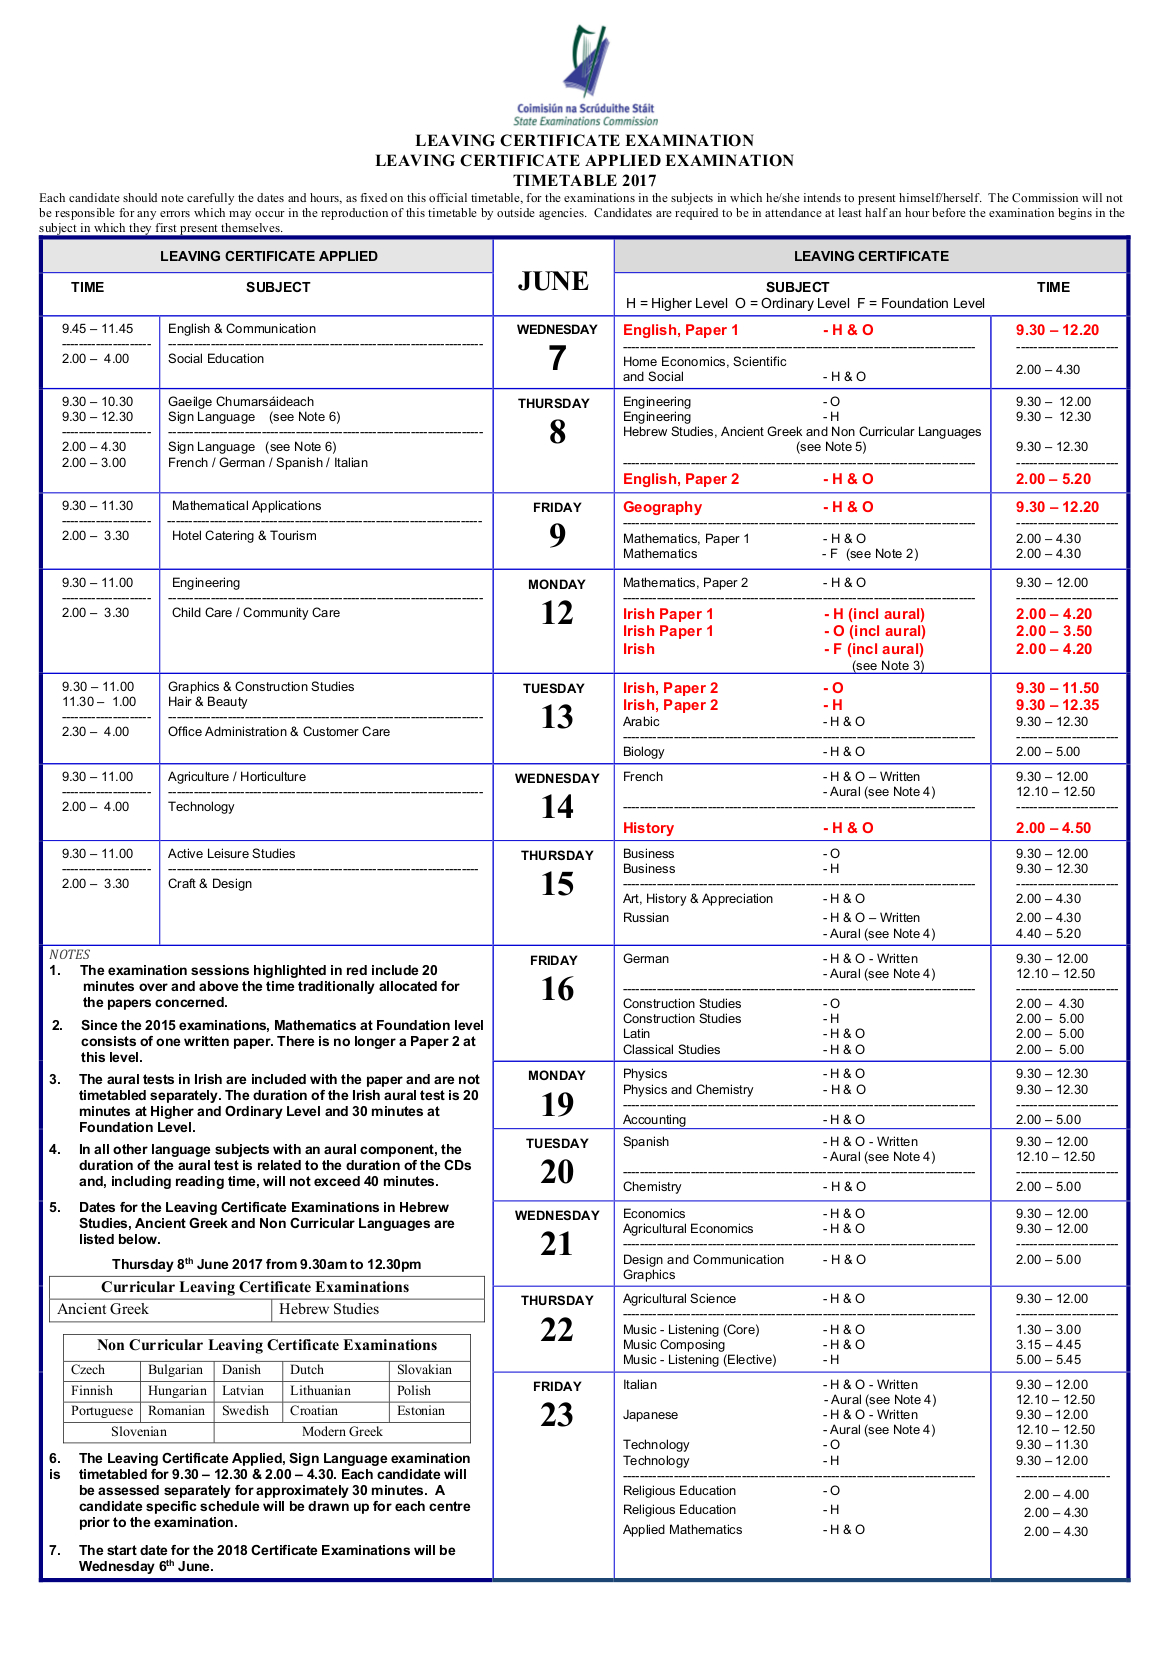 Leaving Certificate Examination Timetable